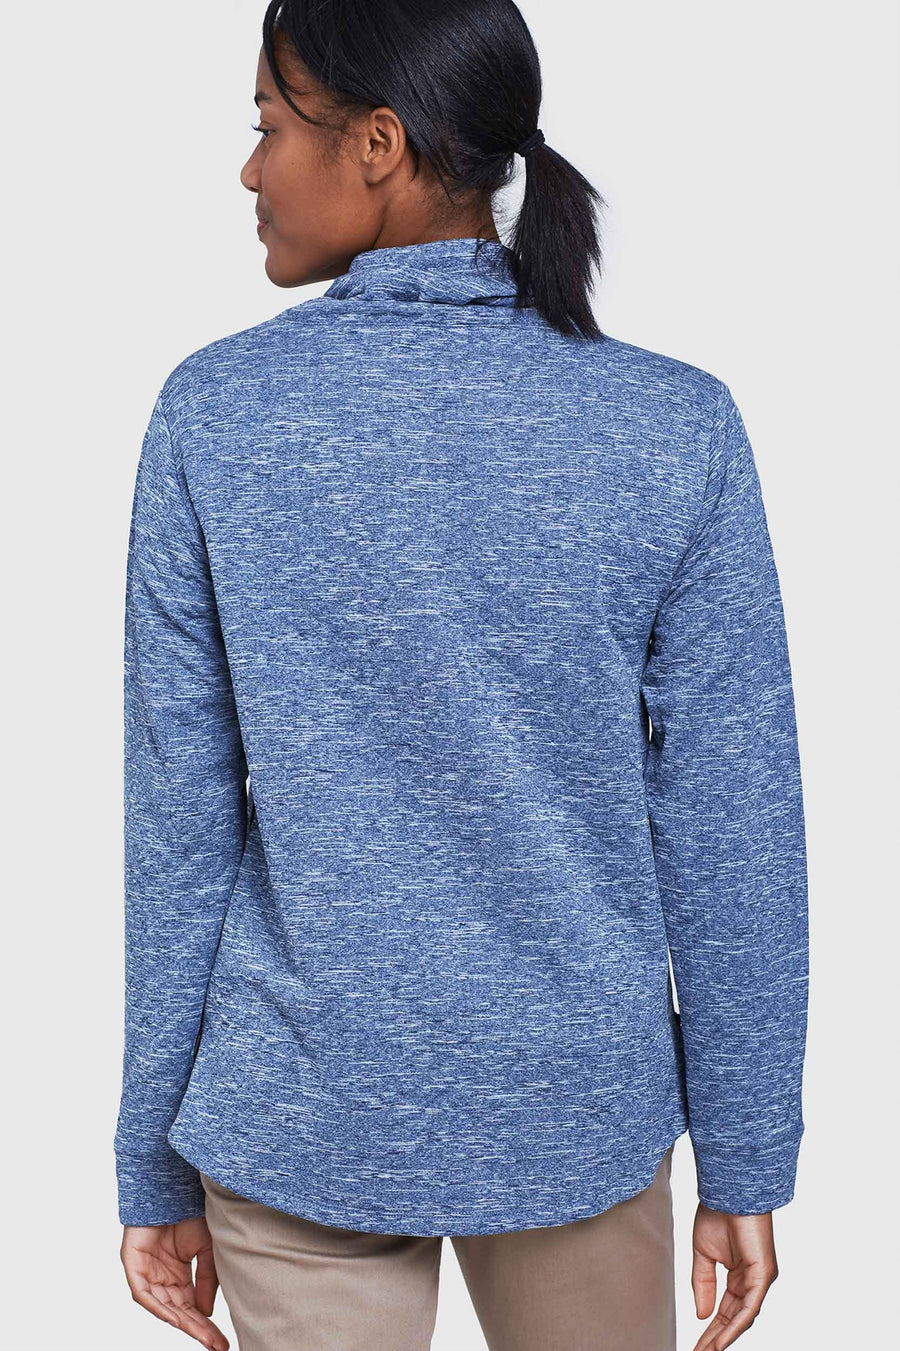 Women's United by Blue Great Escape Long Sleeve